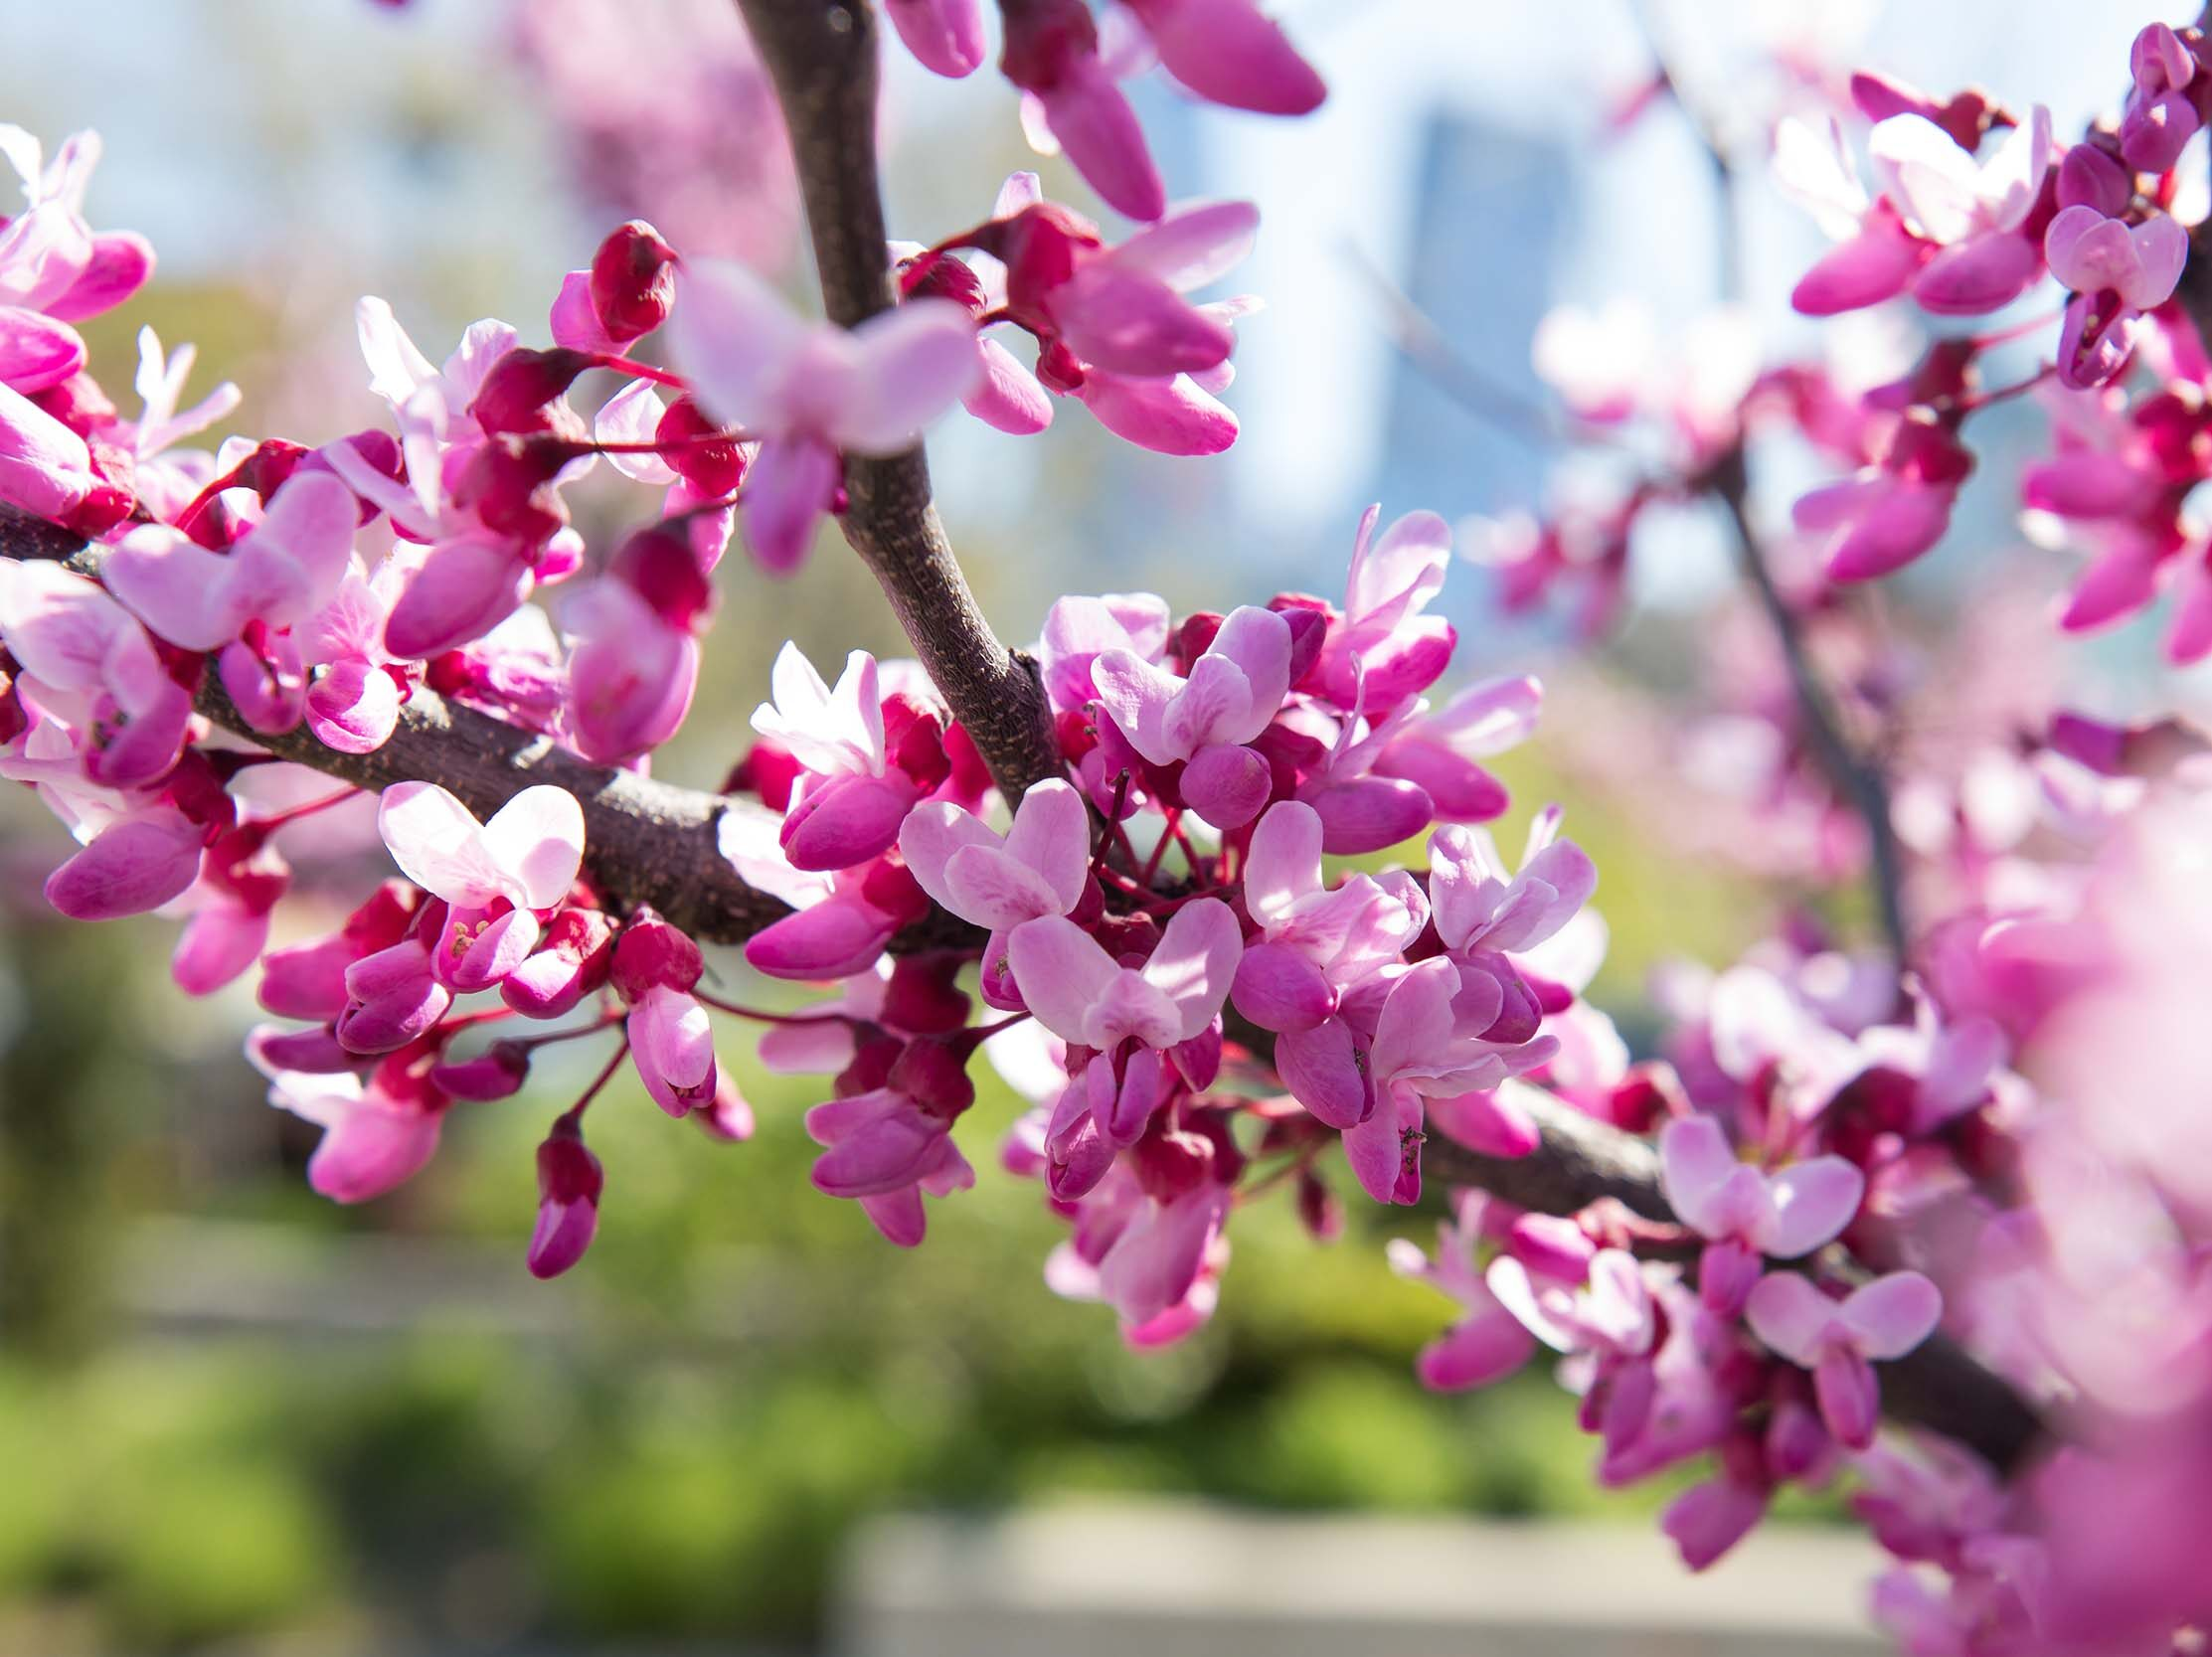 Red bud trees with pink flowers